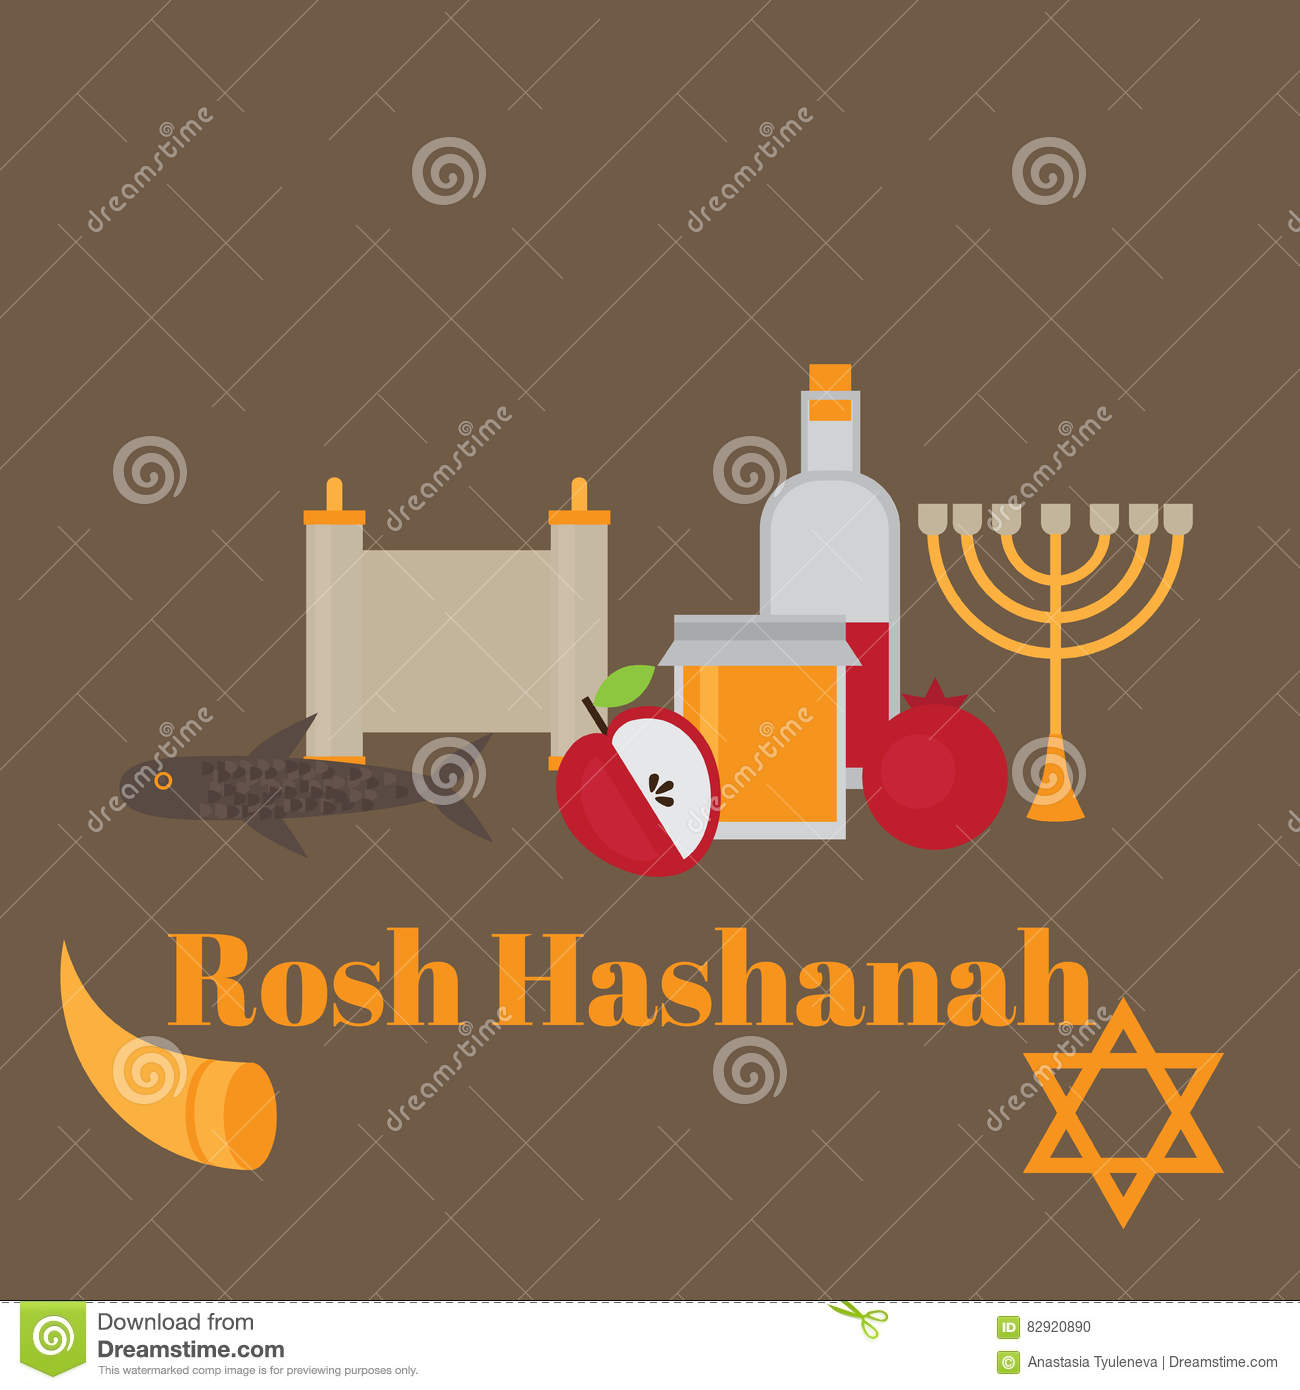 Rosh hashanah jewish new year greeting card hebrew symbols judaism rosh hashanah jewish new year greeting card hebrew symbols judaism elements flat horn kristyandbryce Choice Image